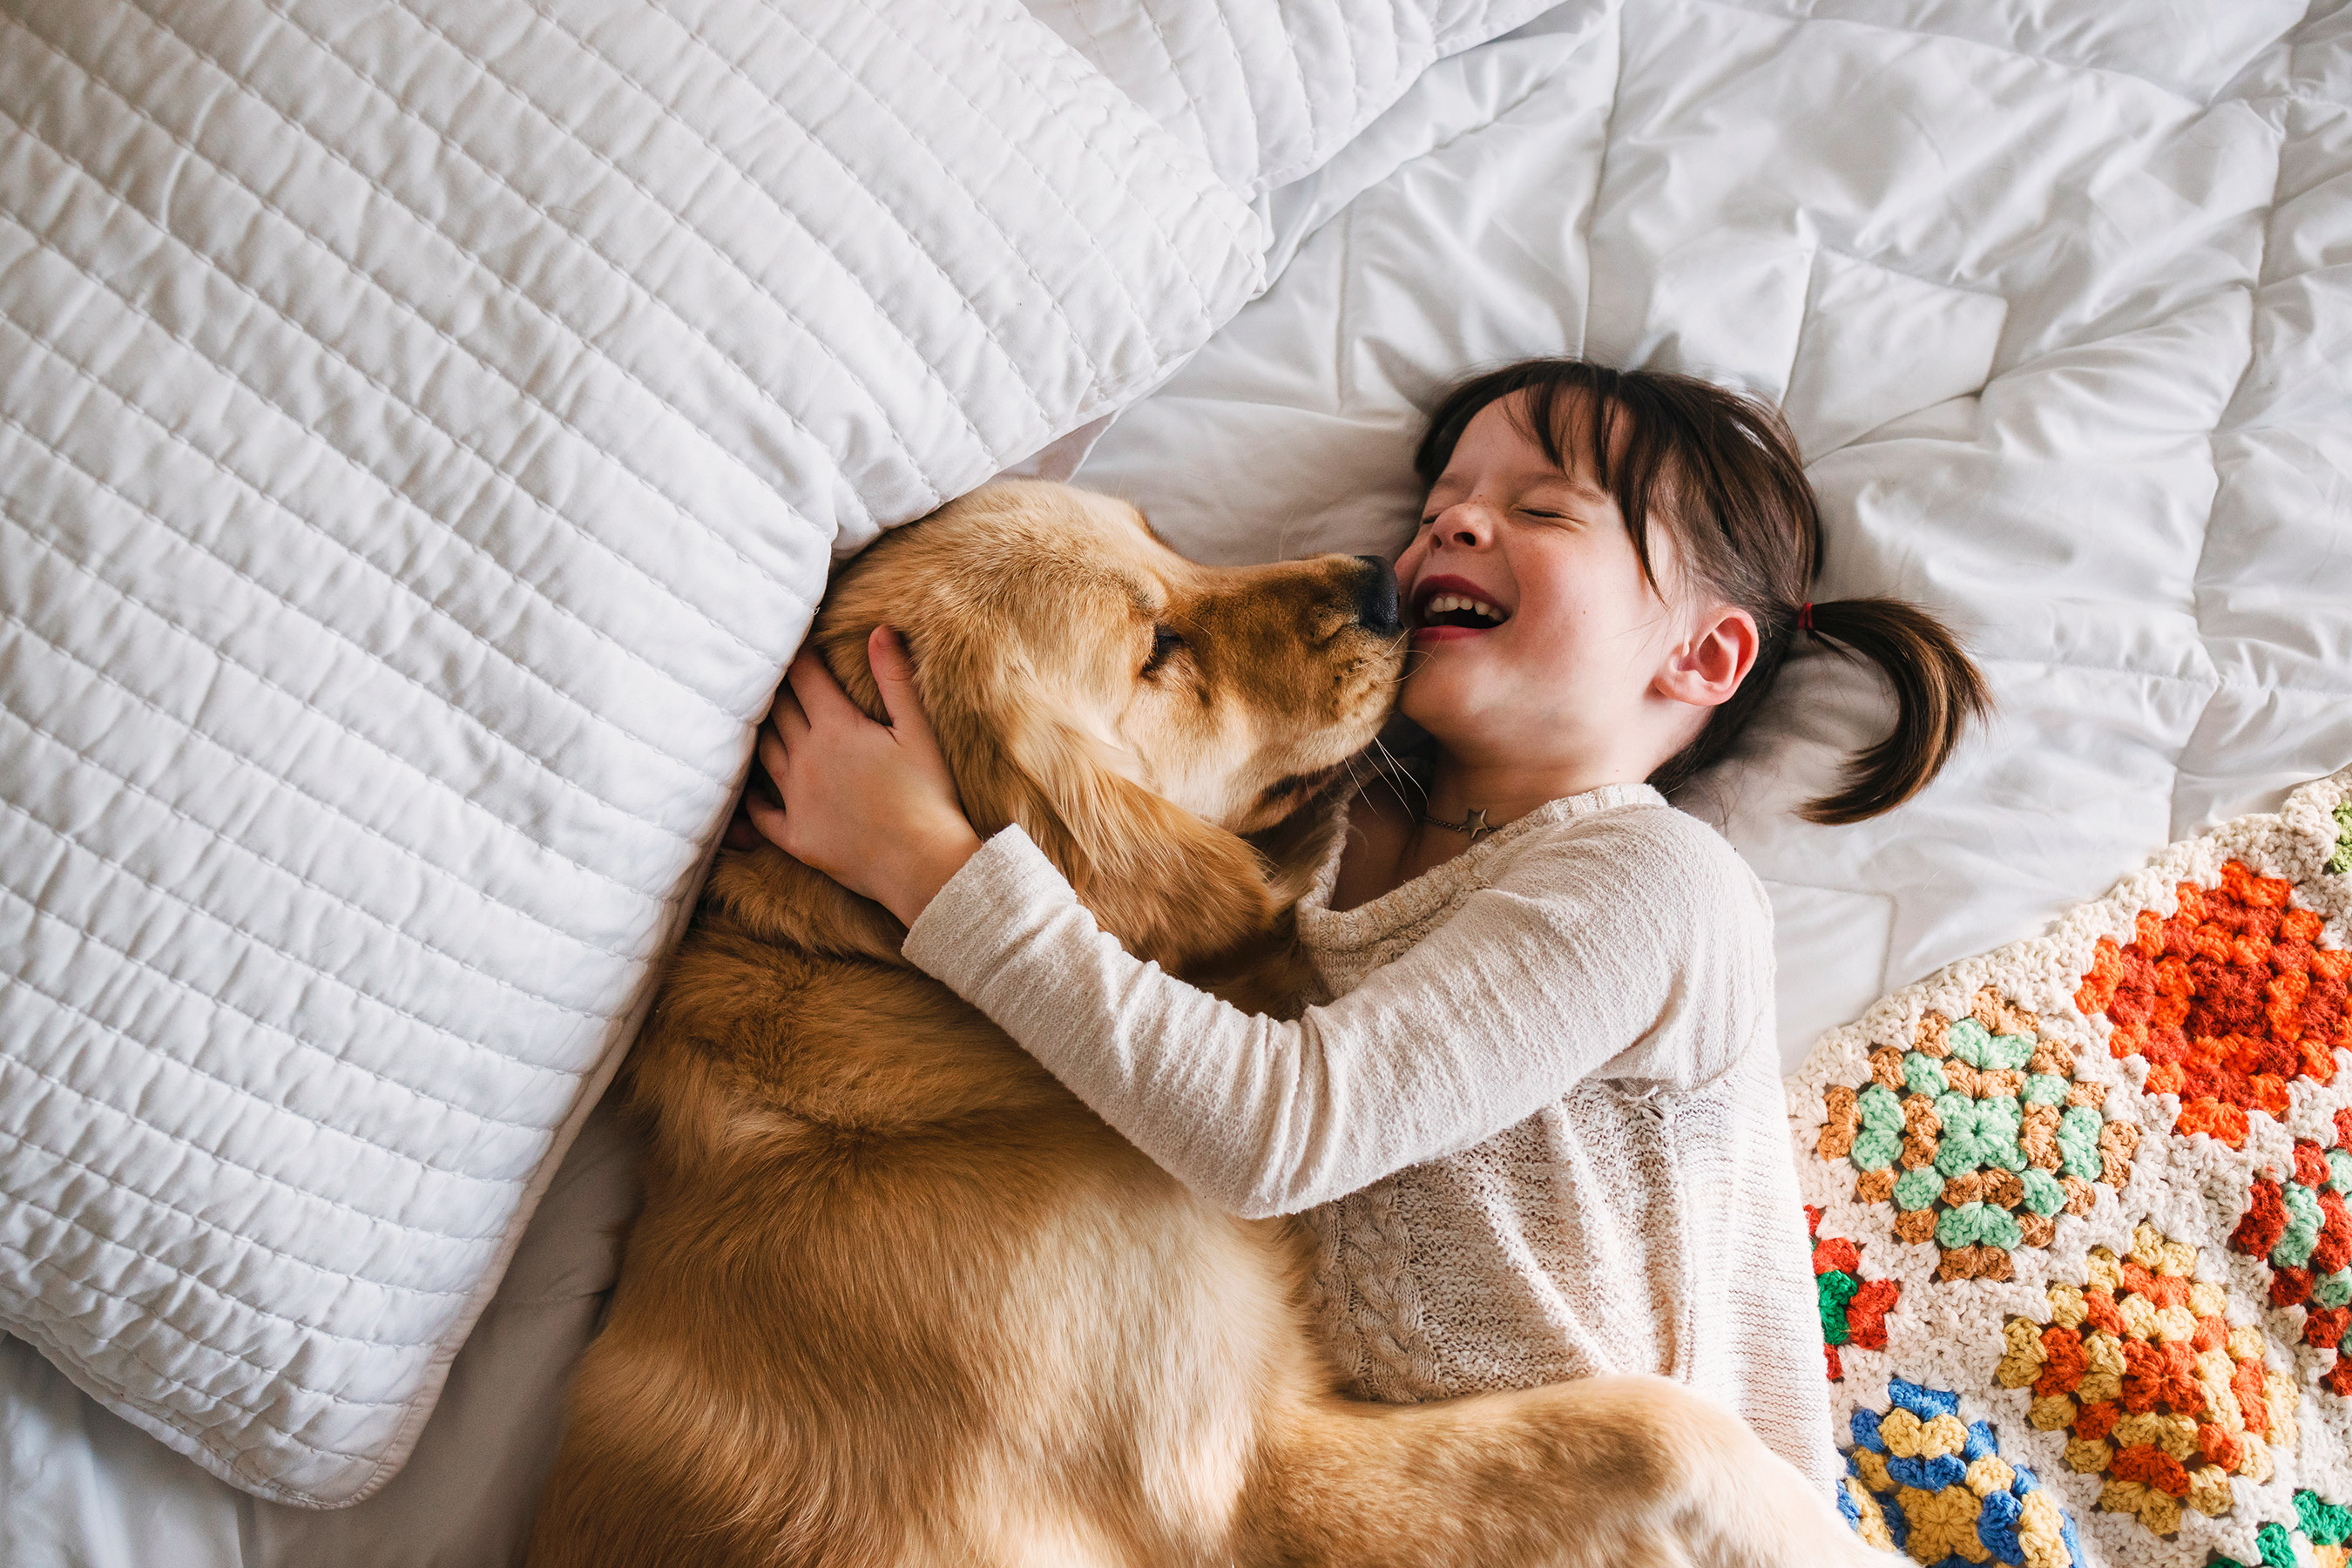 Little Girl and Dog Cuddle on Bed